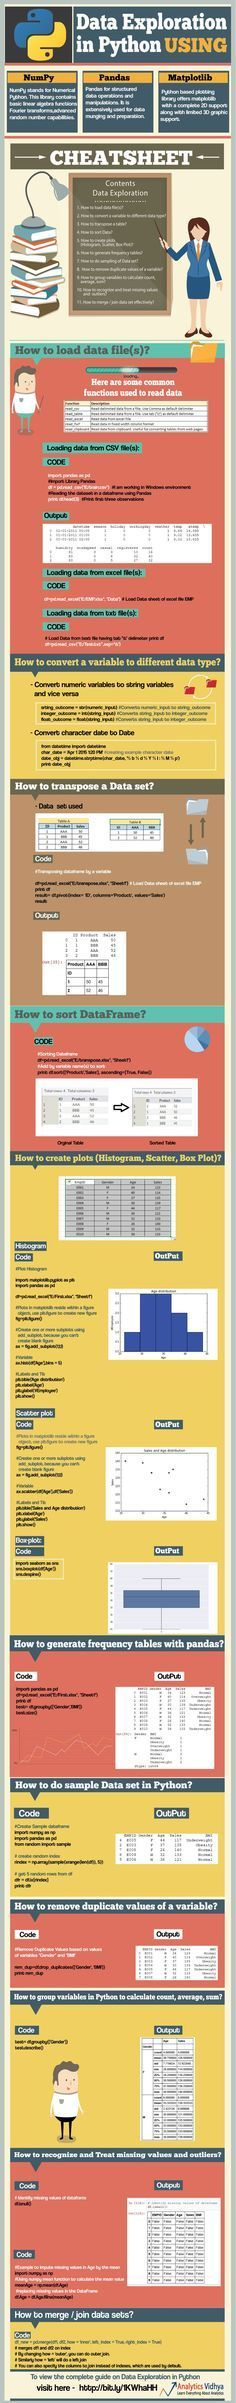 Cheat Sheet On Data Exploration In Python | Data Analysis In Python #Infographic #Infografía